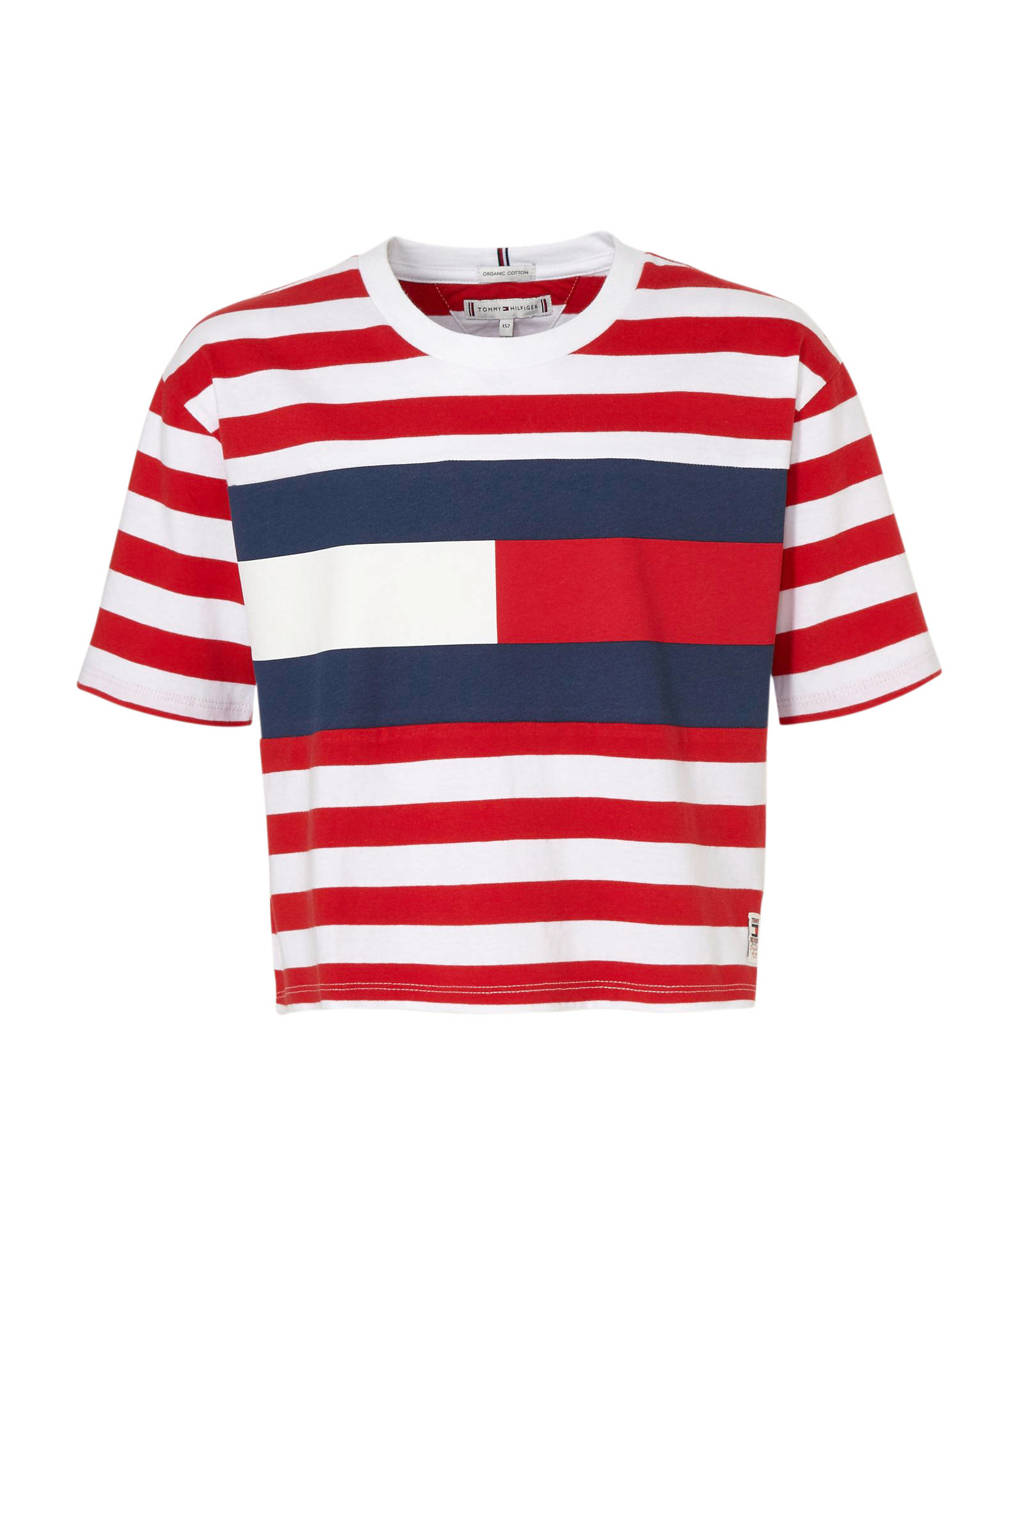 Tommy Hilfiger gestreept T-shirt wit/rood/donkerblauw